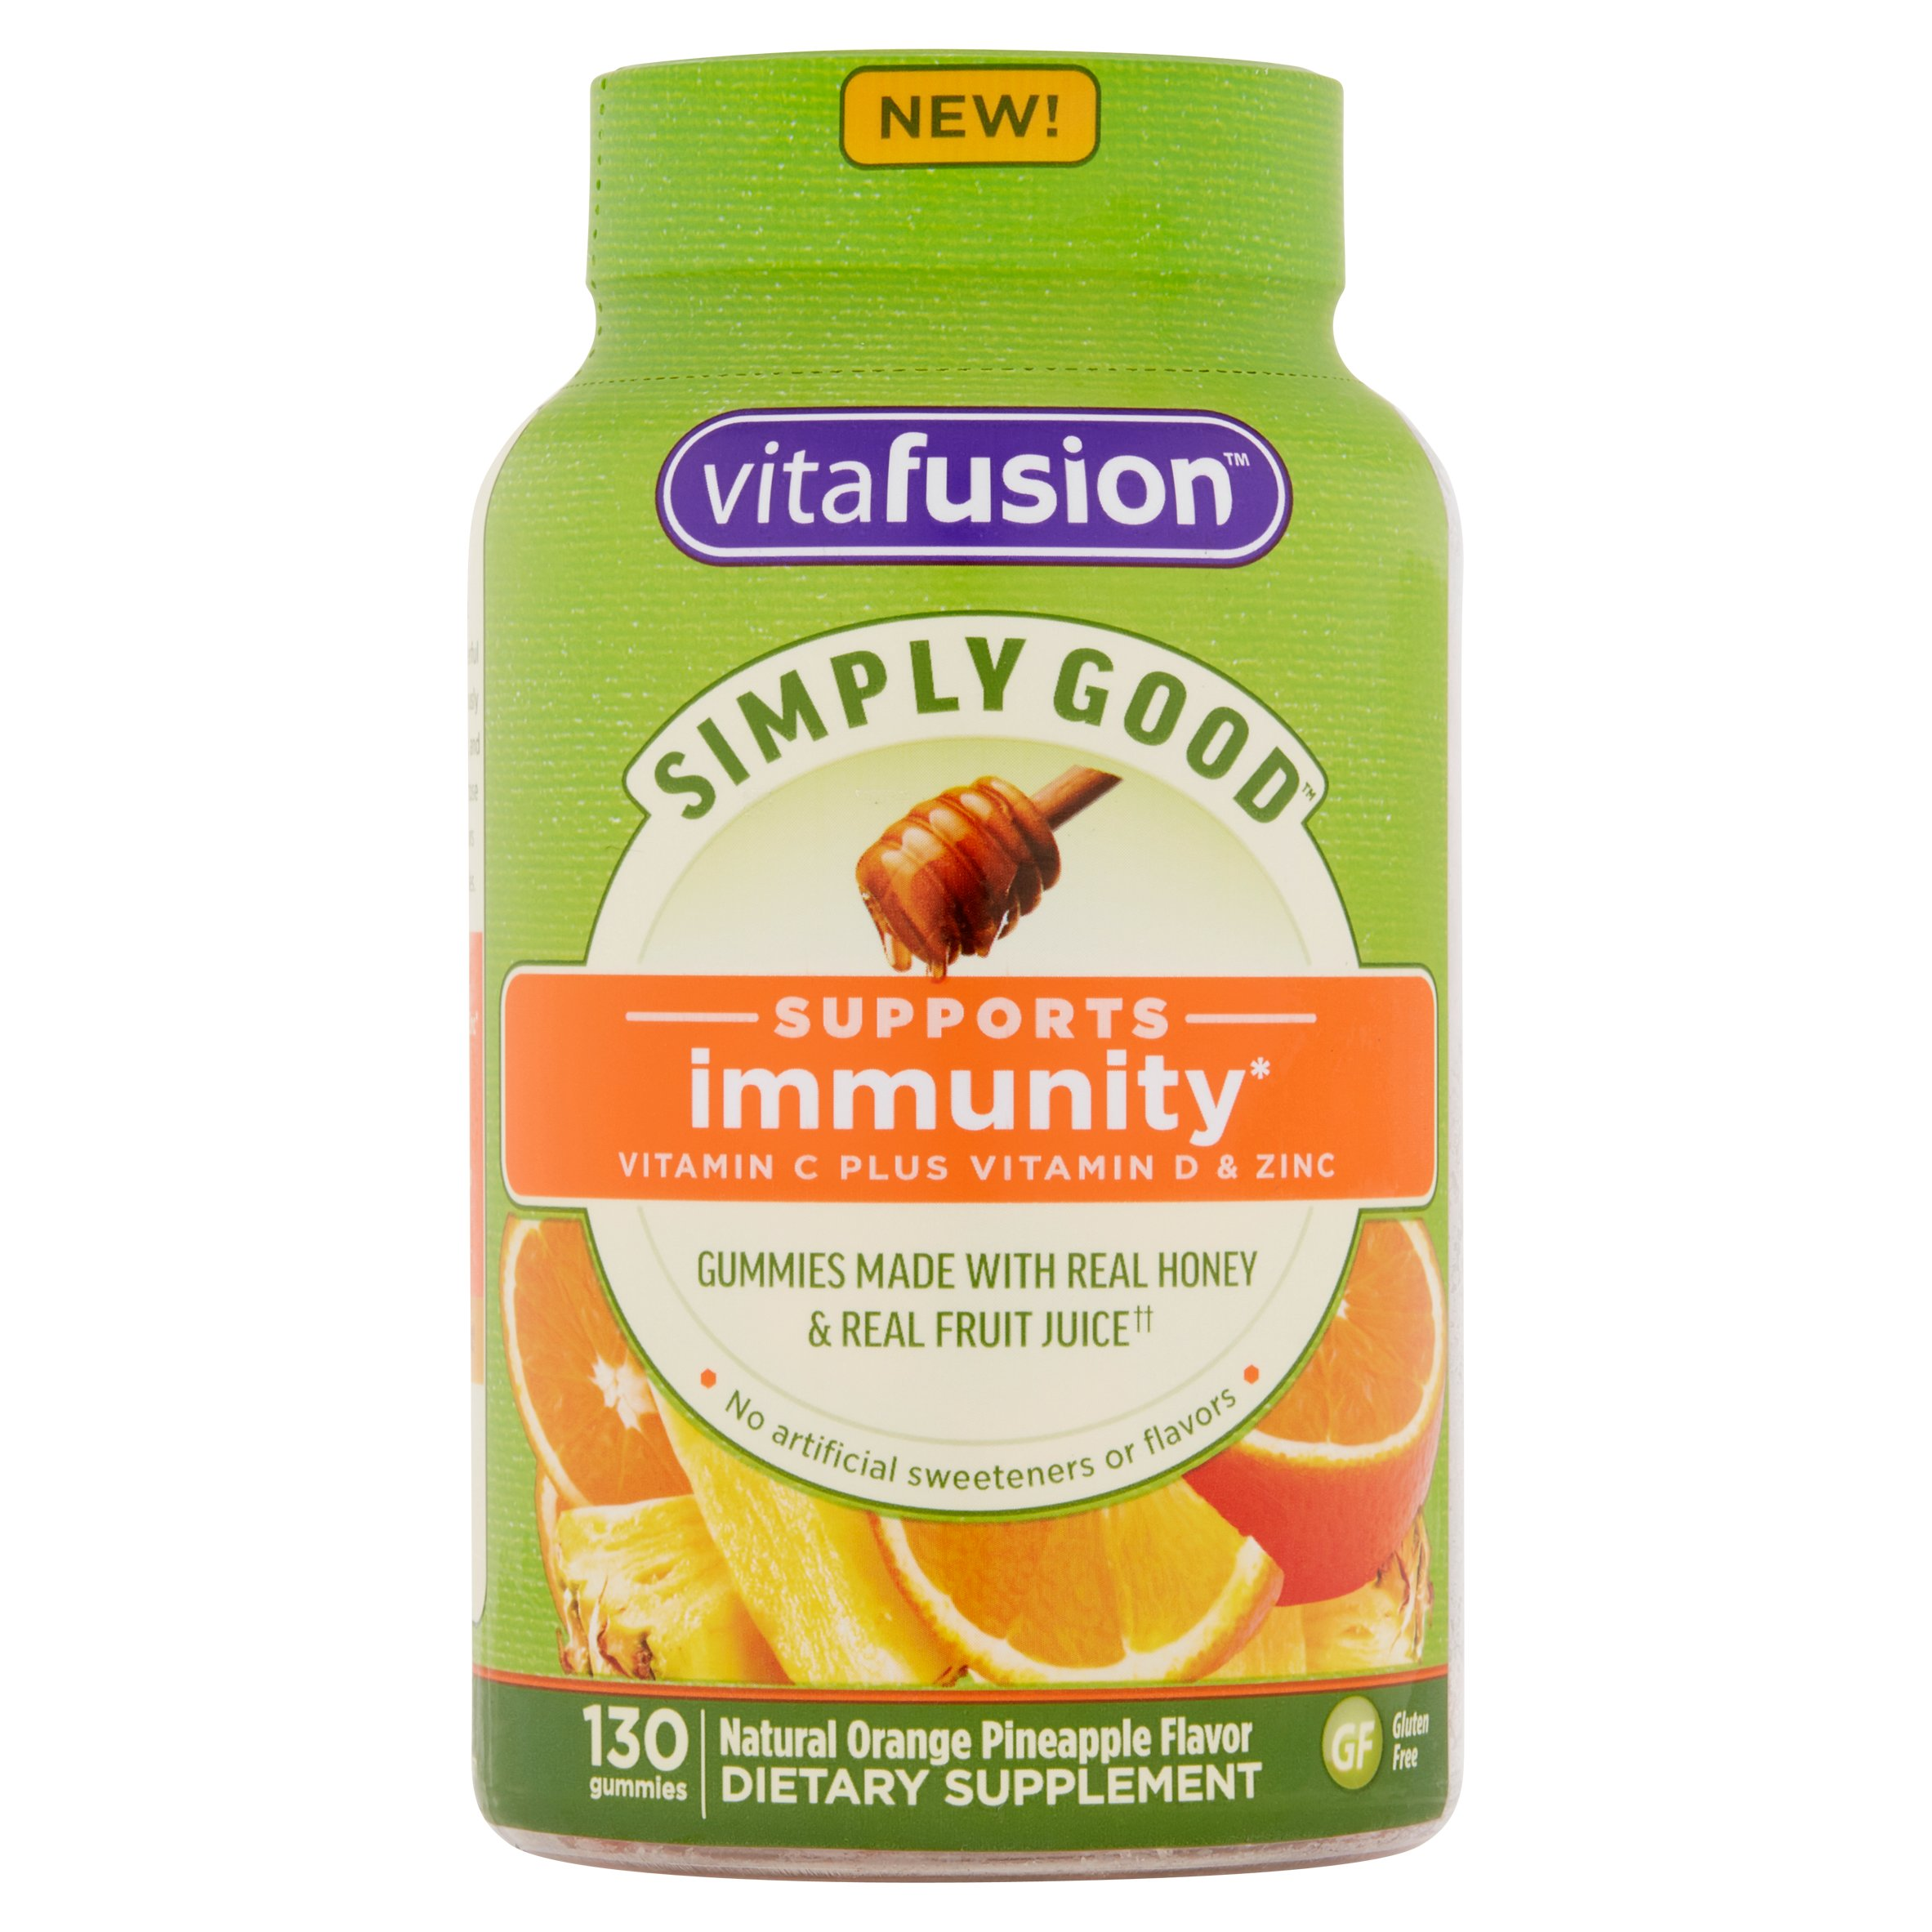 Vitafusion Simply Good Natural Orange Pineapple Flavor Gummies,130 count